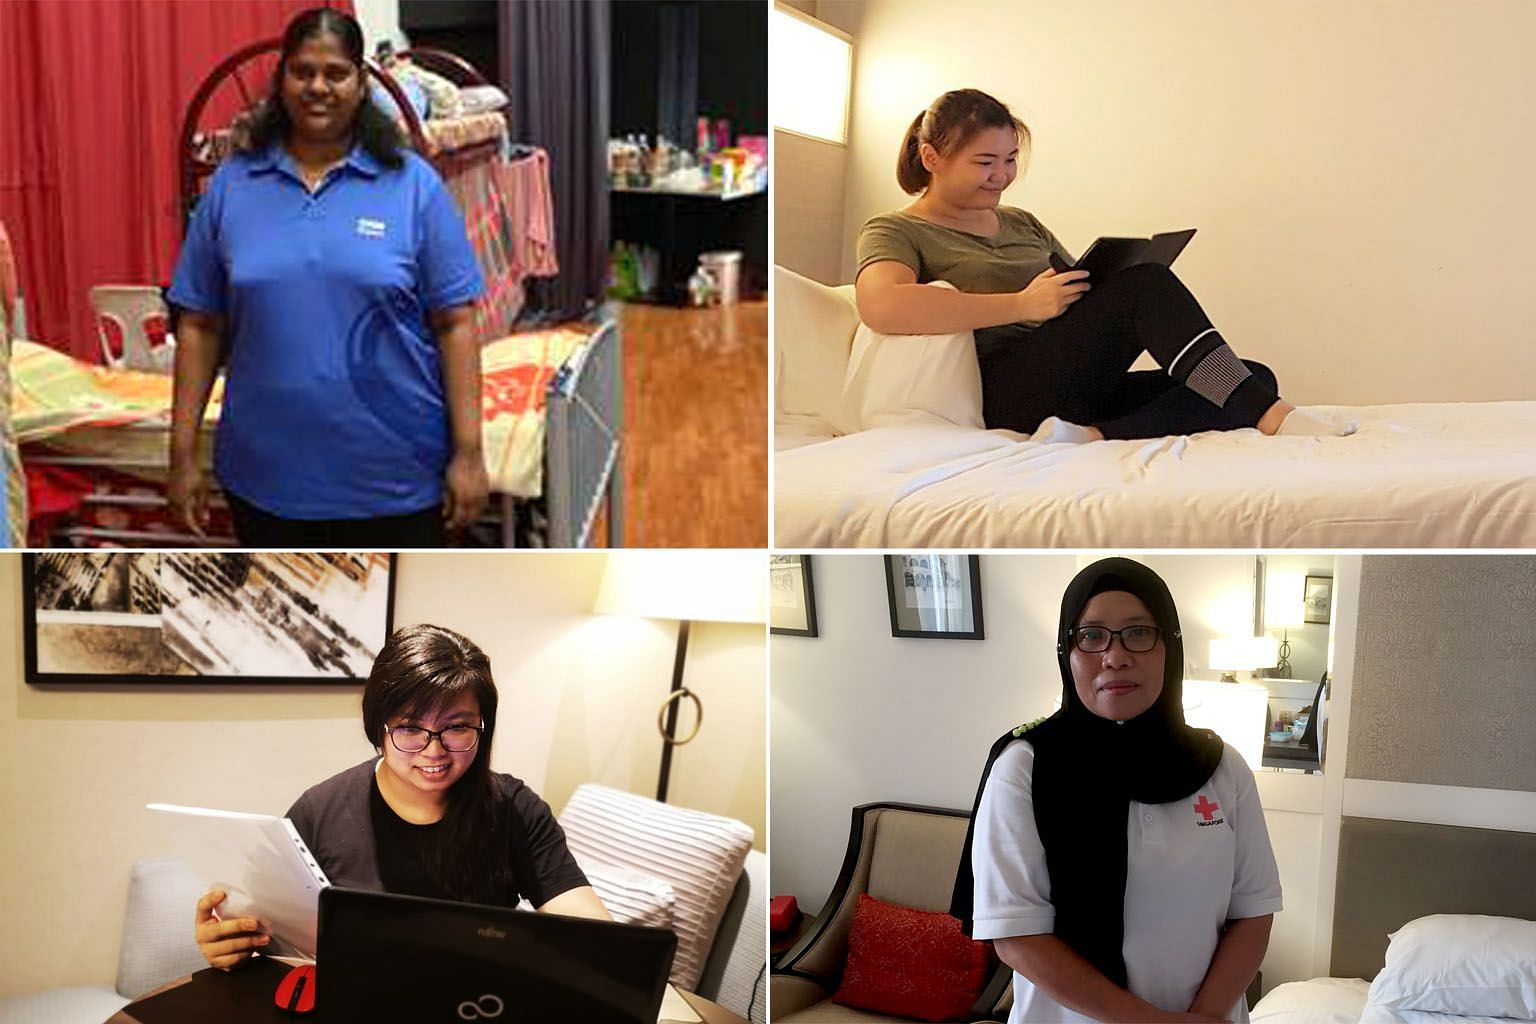 The coronavirus situation has resulted in thousands of nursing home staff in Singapore staying in hotels, or on-site at their places of work, for the safety of their residents. Among them are (clockwise from top left) Madam Prema Manikandan, in the m